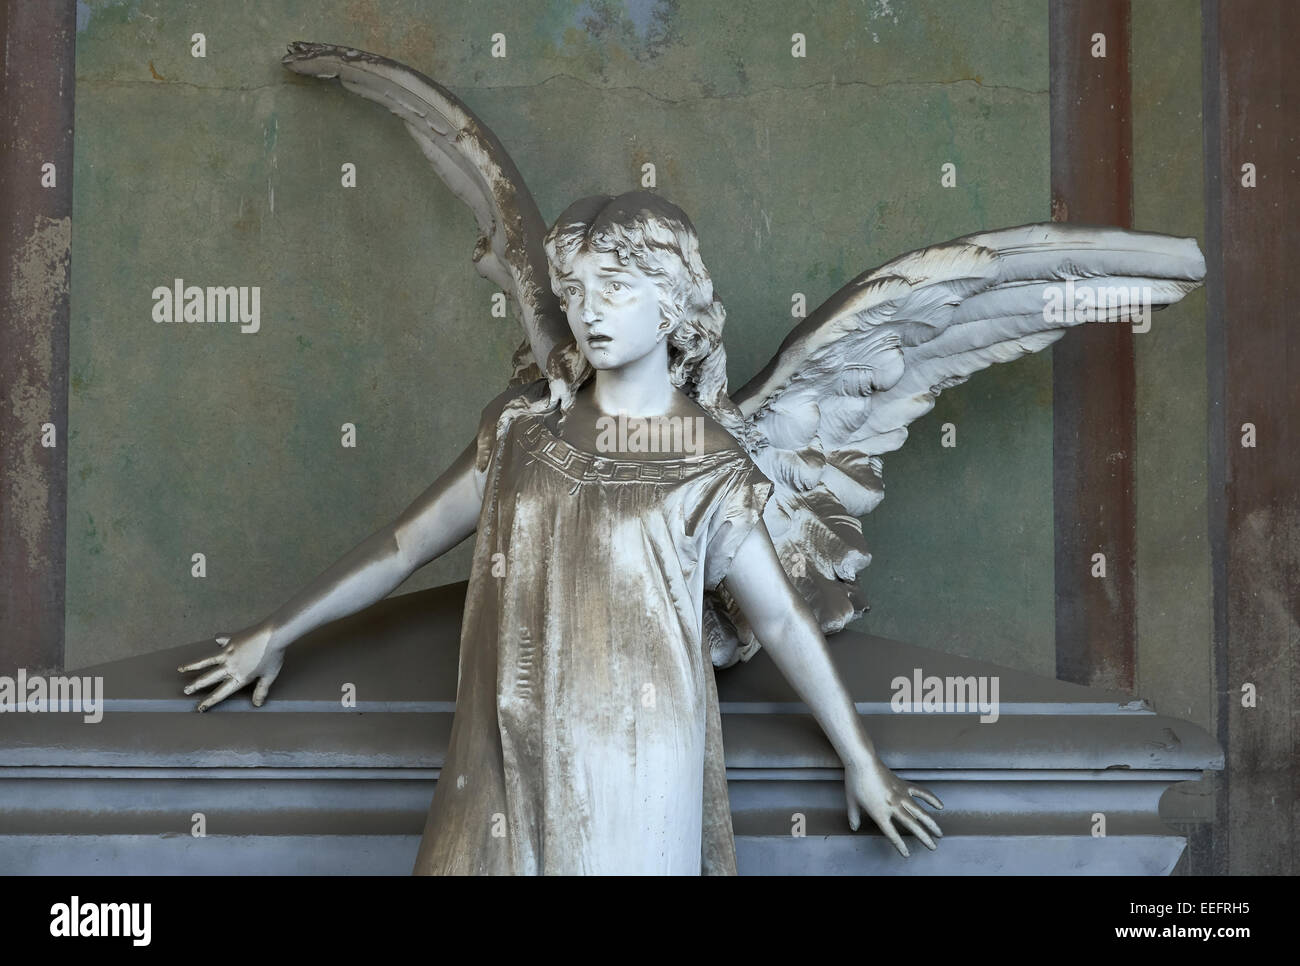 Milan, Italy, Gallery of the Monumental Cemetery - Stock Image